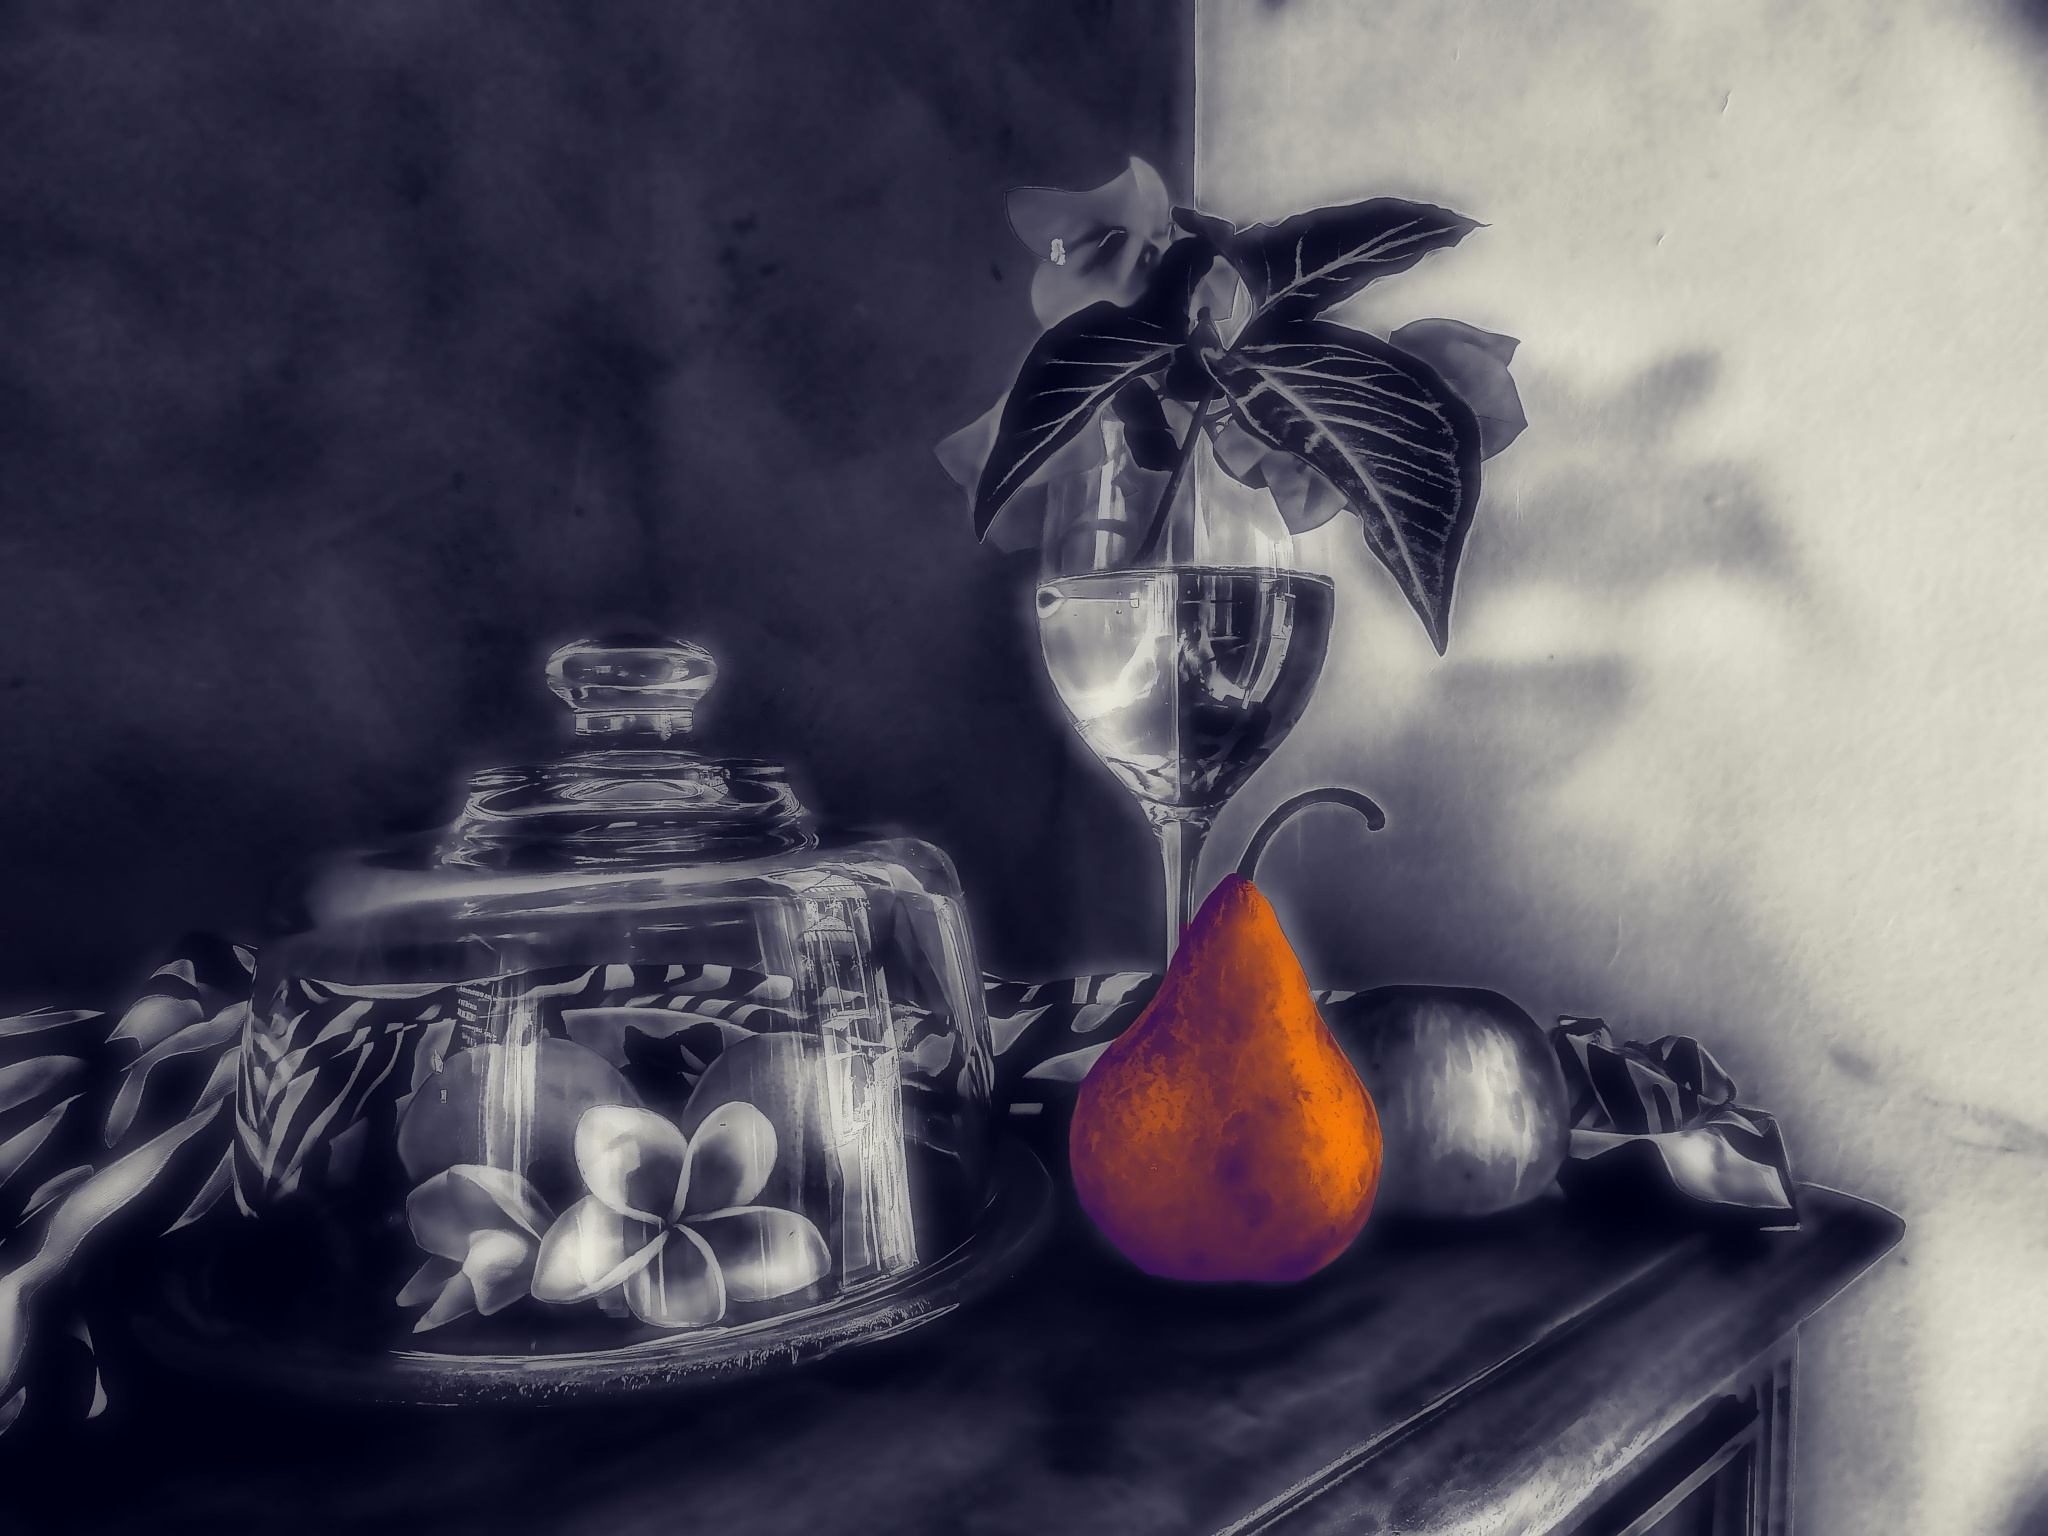 Still life 9 by DanicaD